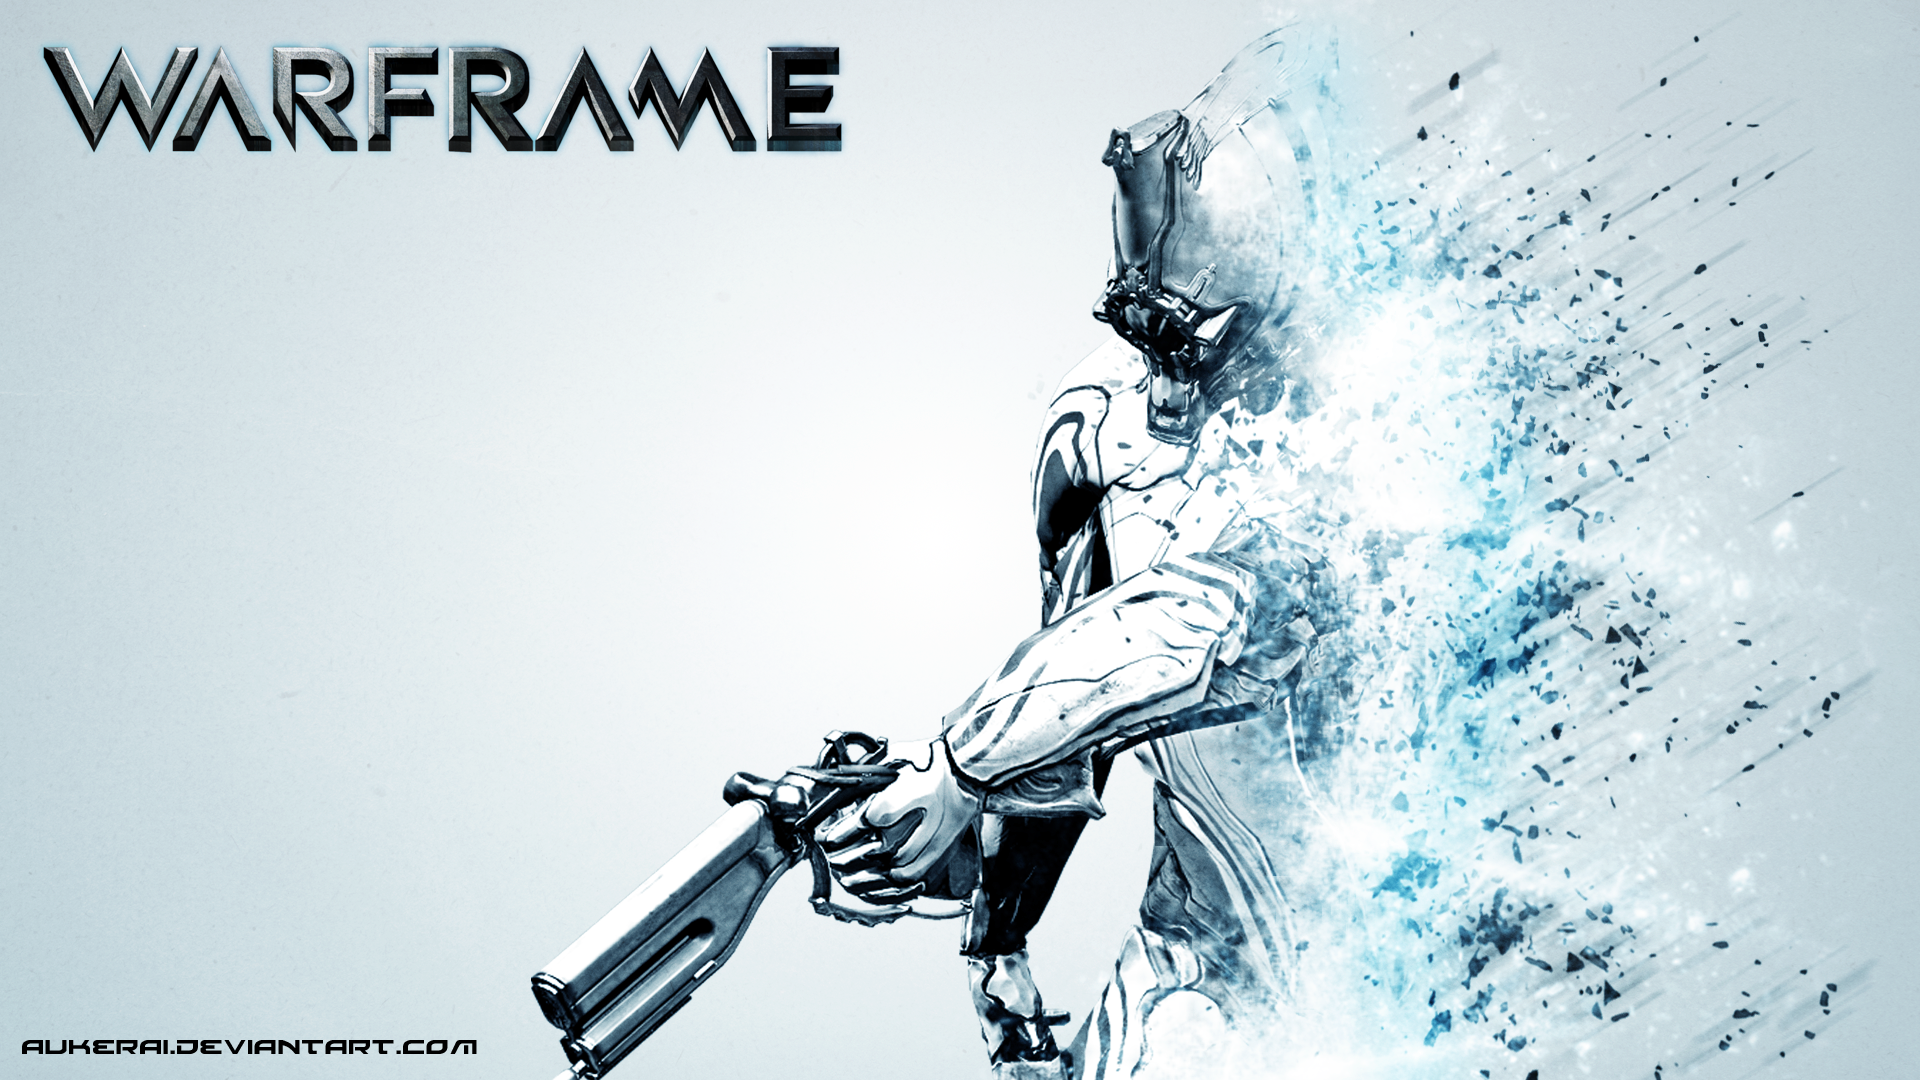 Nice HD Wallpapers Collection of Warframe - 1920x1080, 05.26.14